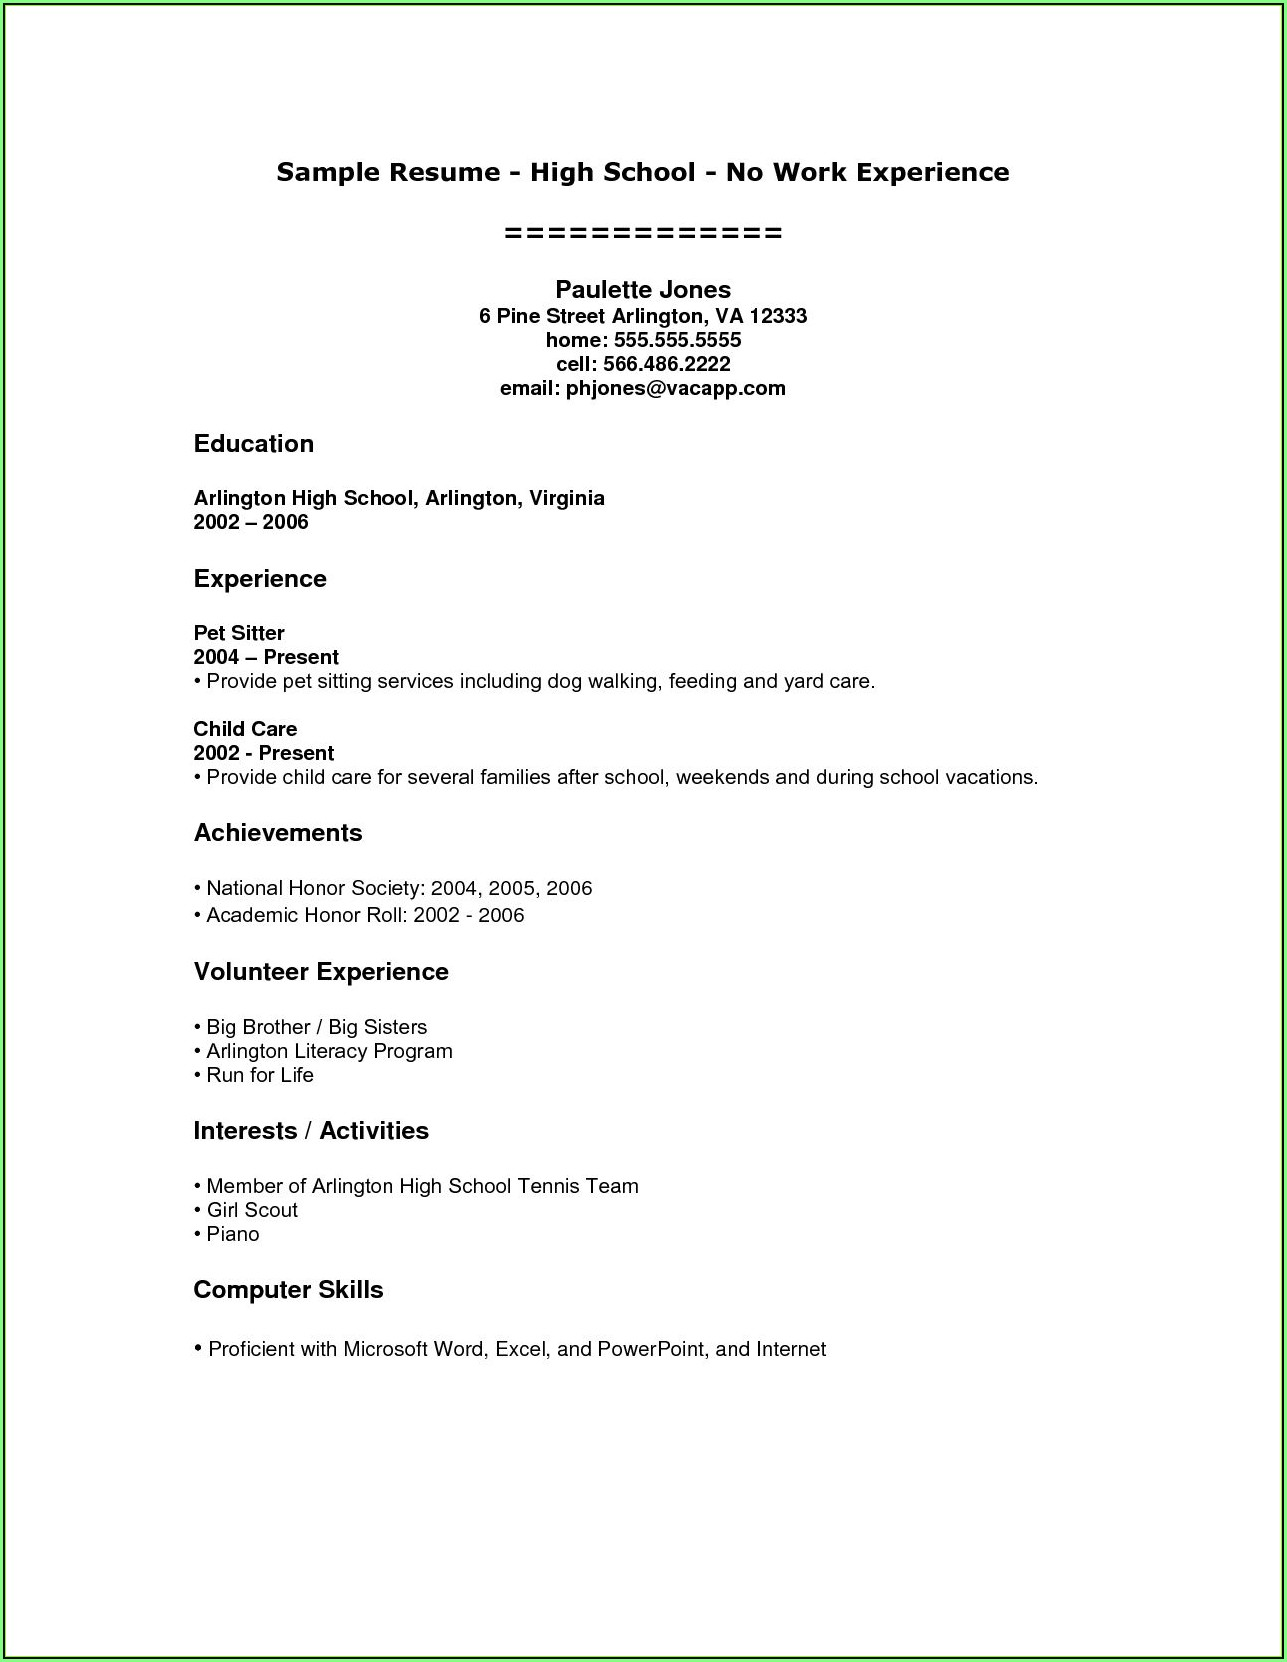 Free High School Resume Template